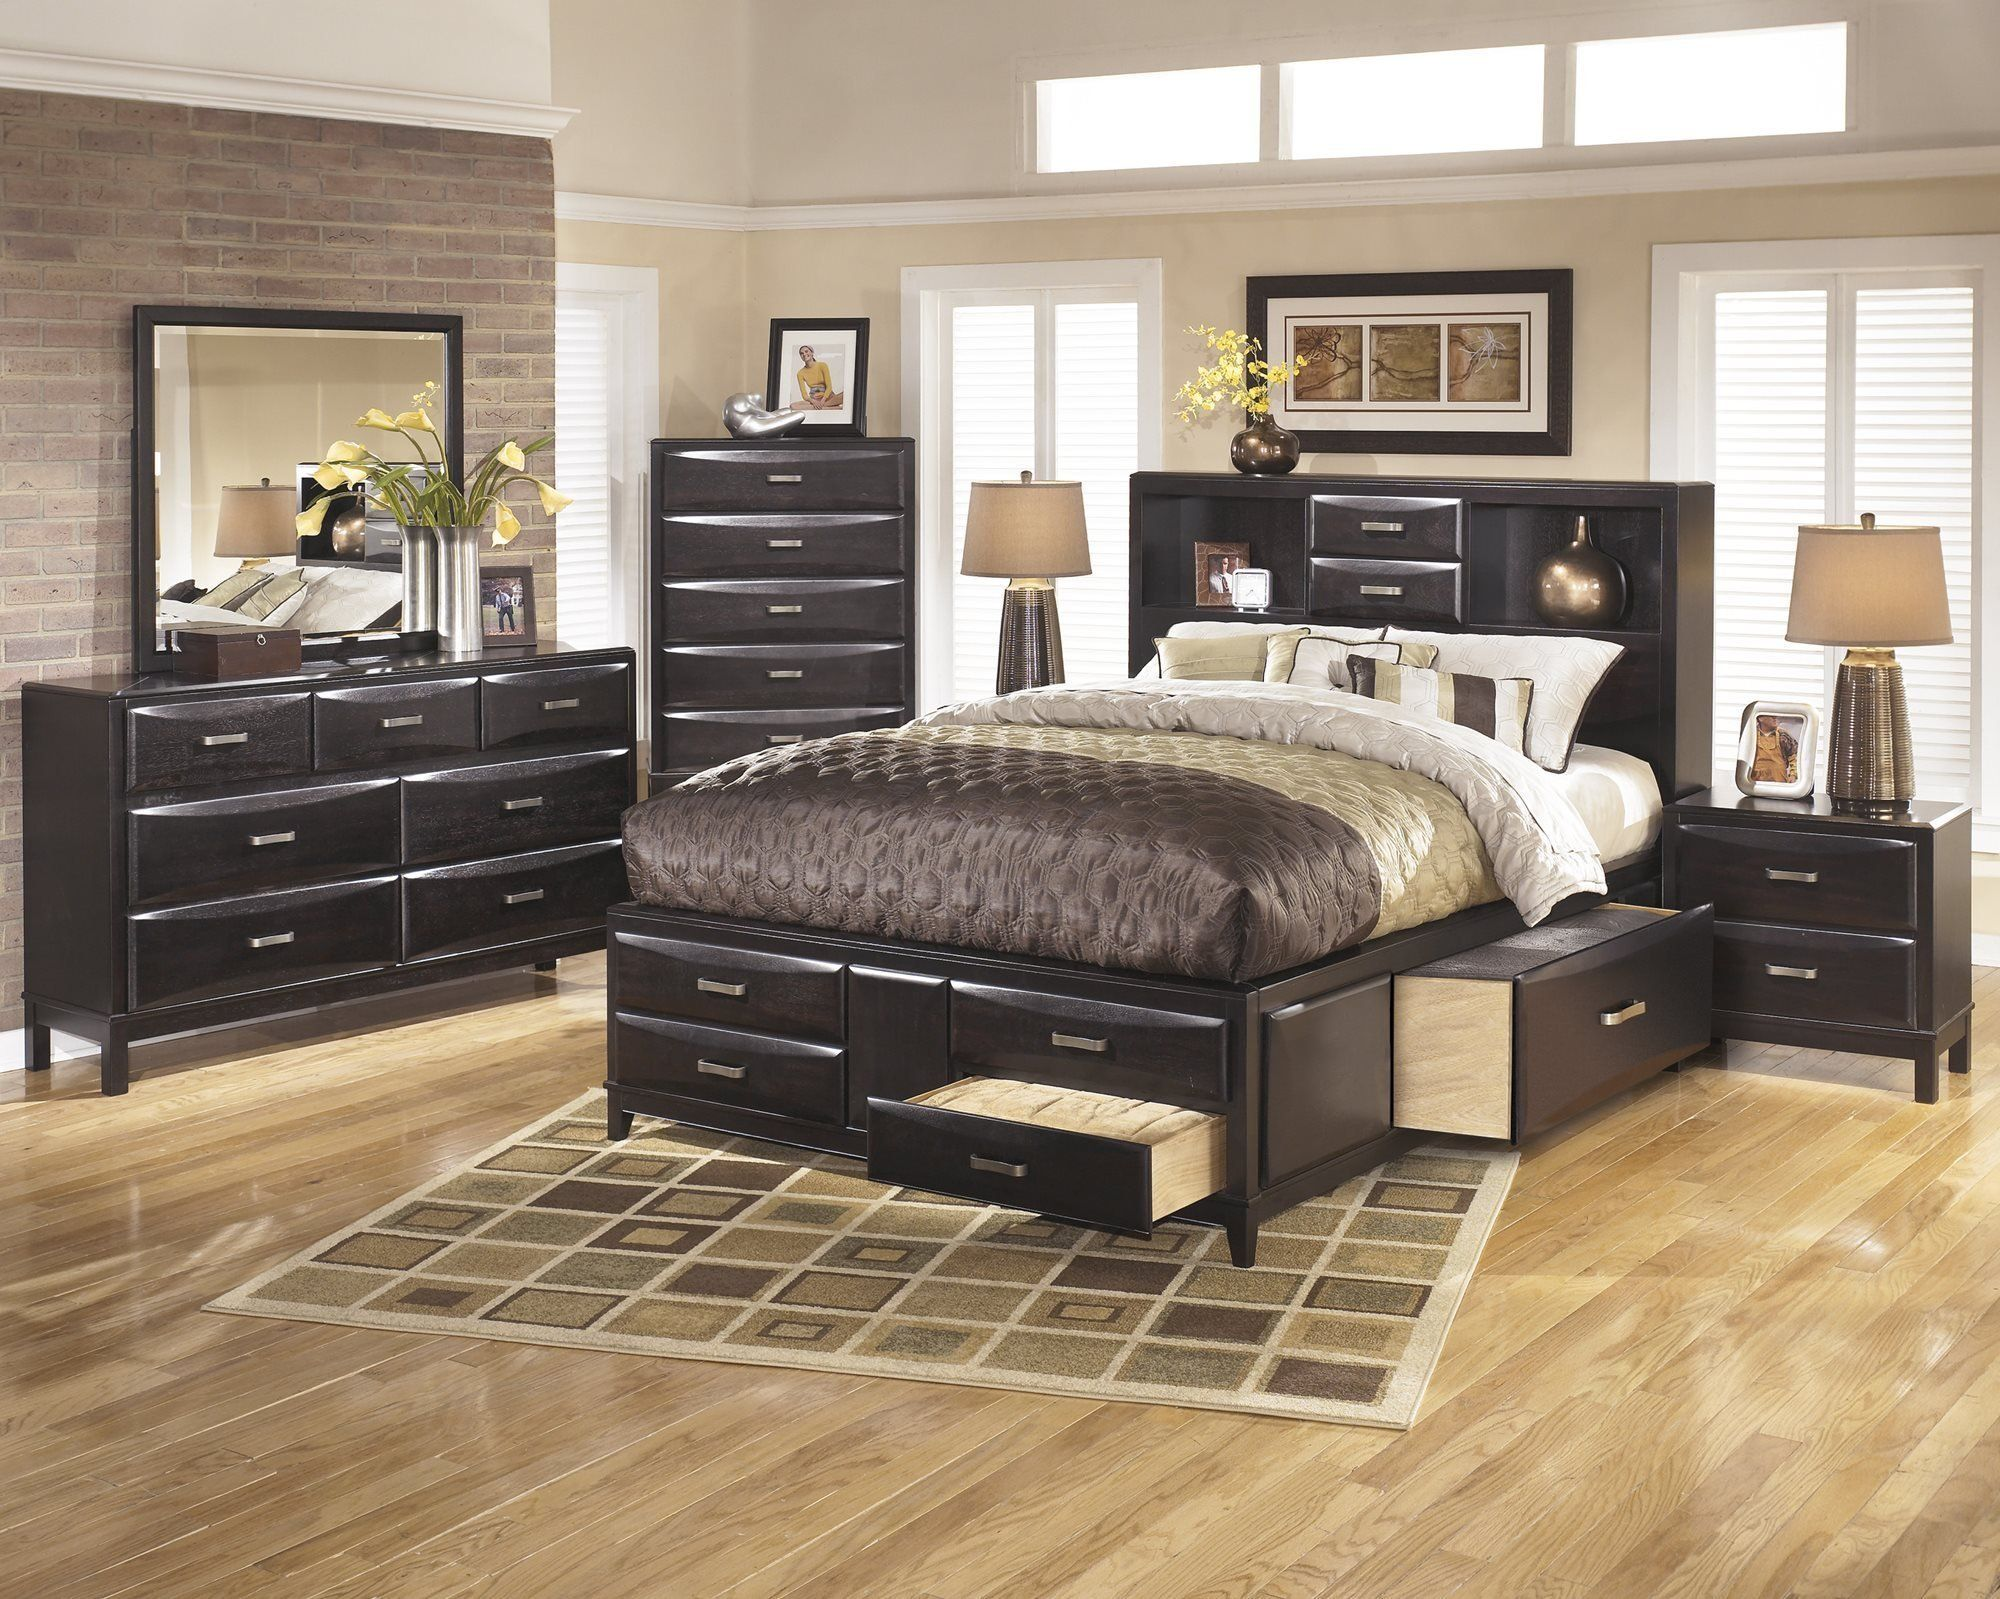 Ashley Kira 5pc Bedroom Set E King Storage Bed Dresser Mirror Two Nightstand In Almost Black Ashley Furniture Bedroom Bedroom Furniture Sets Ashley Furniture